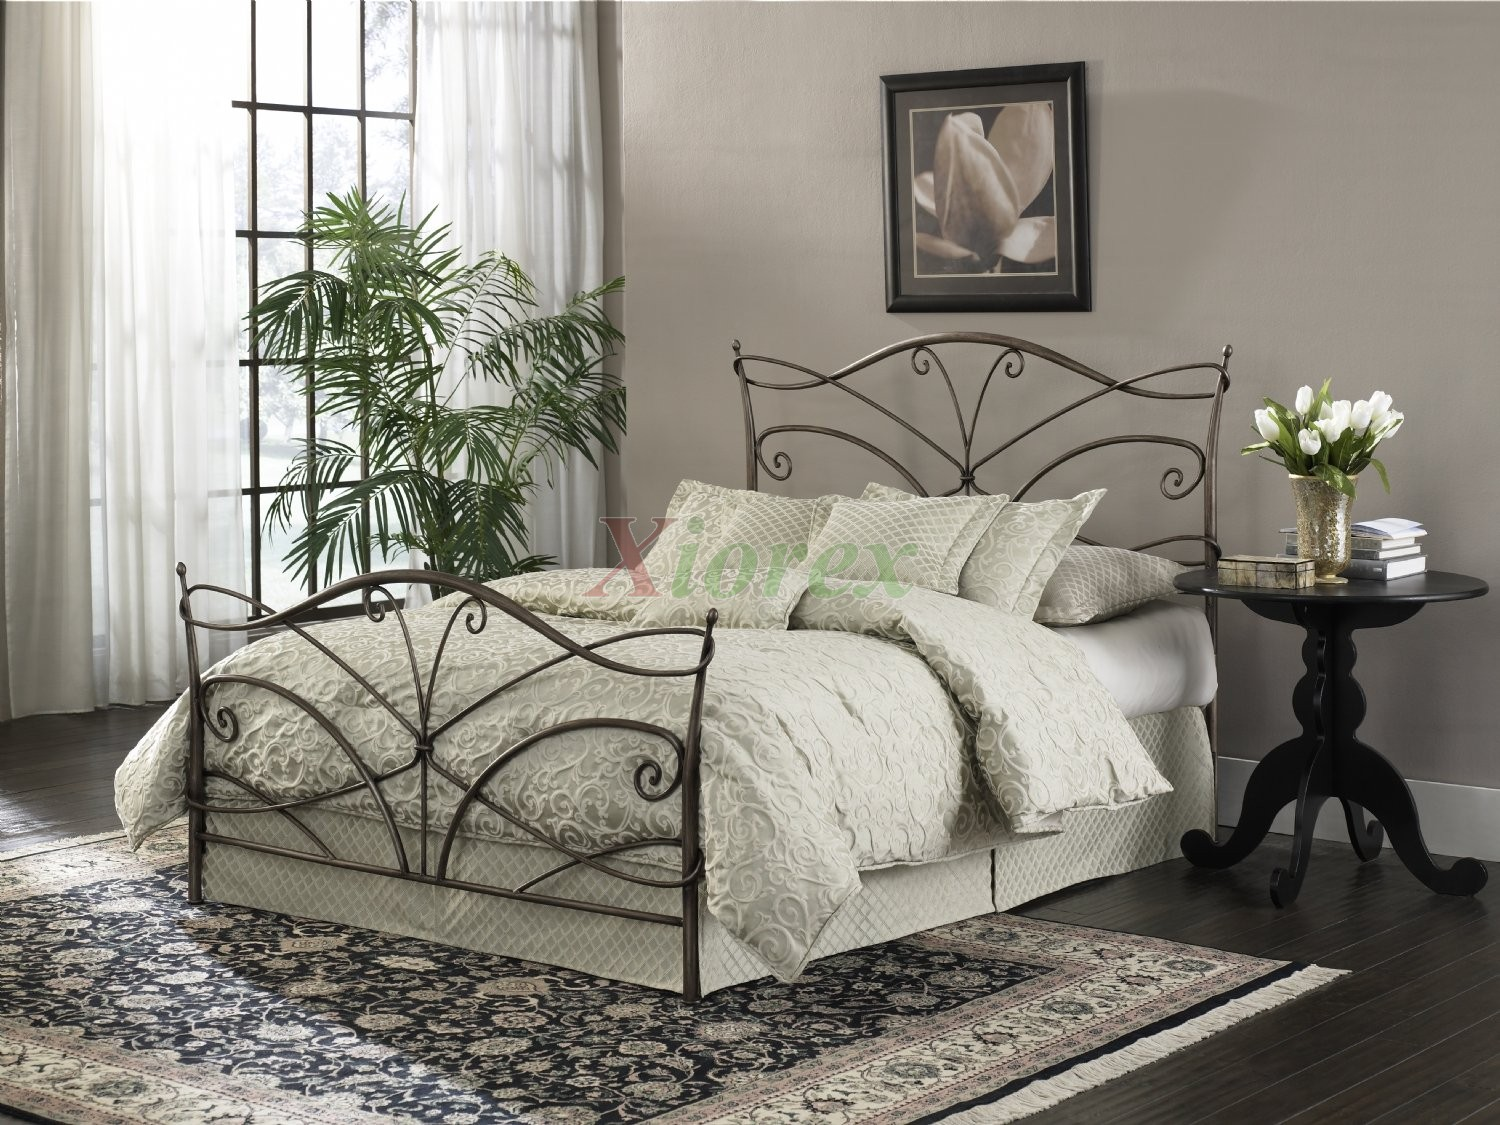 Papillon Bed Butterfly Bed In